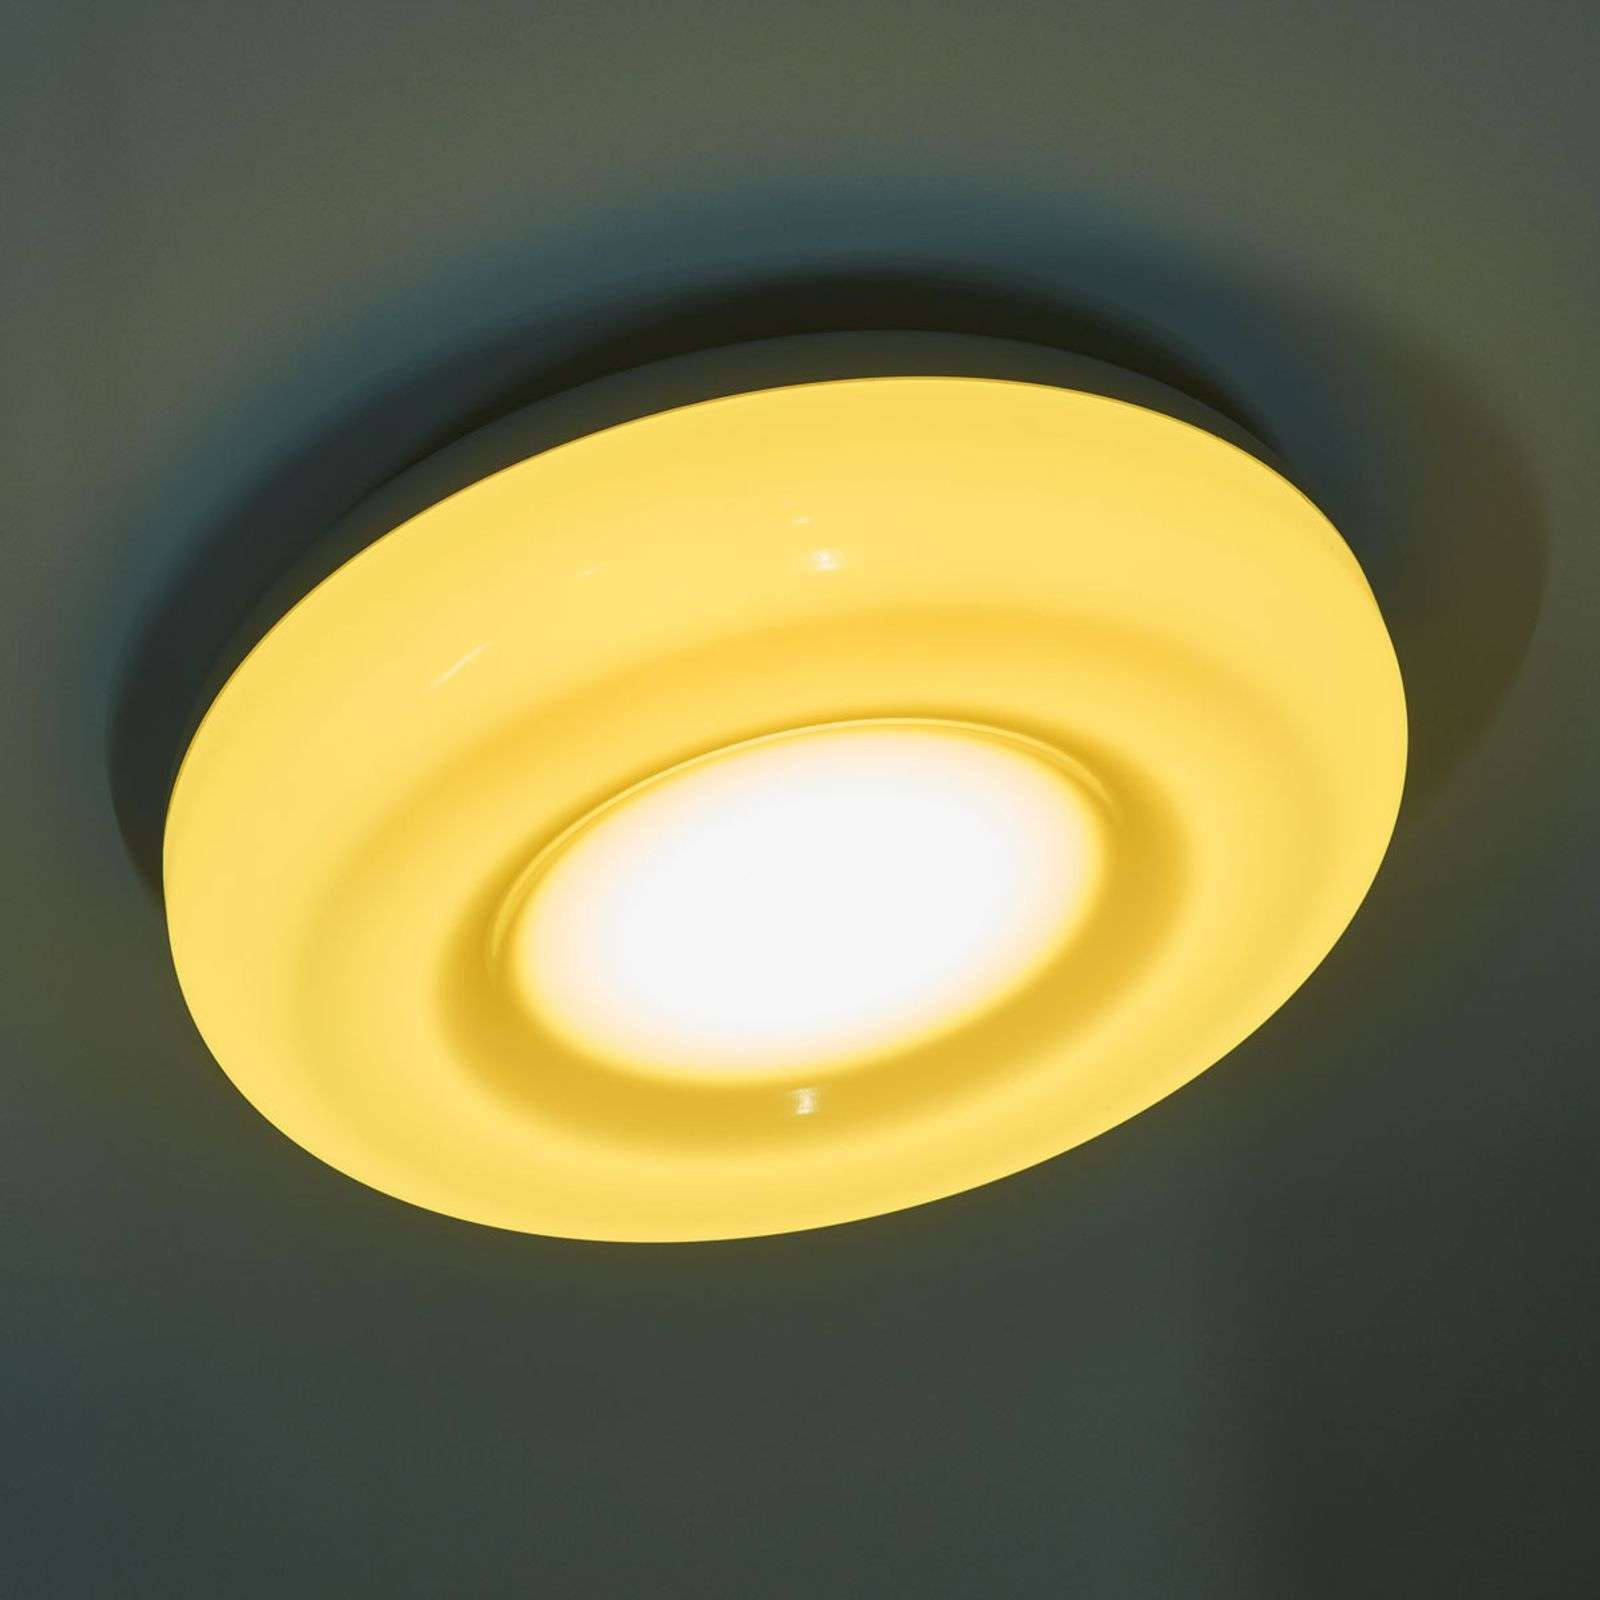 Plafonnier LED Daphnis réglable, IP44